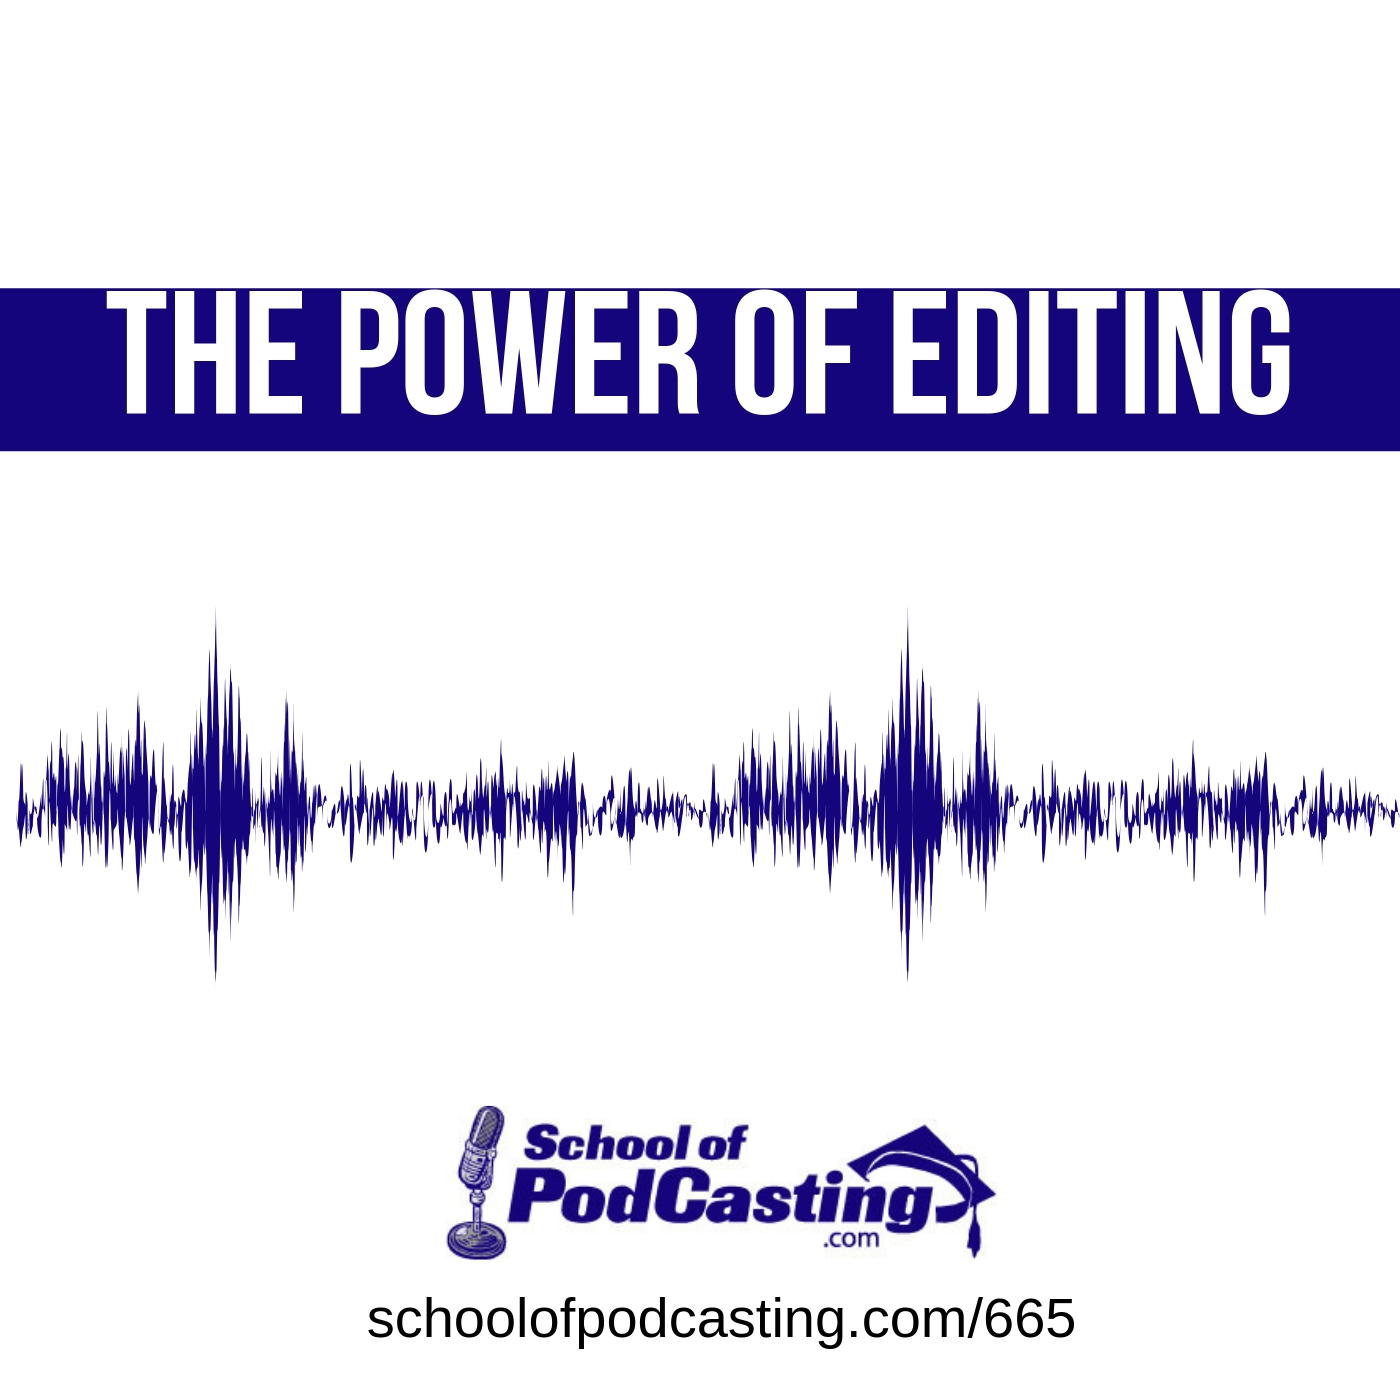 605e75705ddb School of Podcasting → Podbay